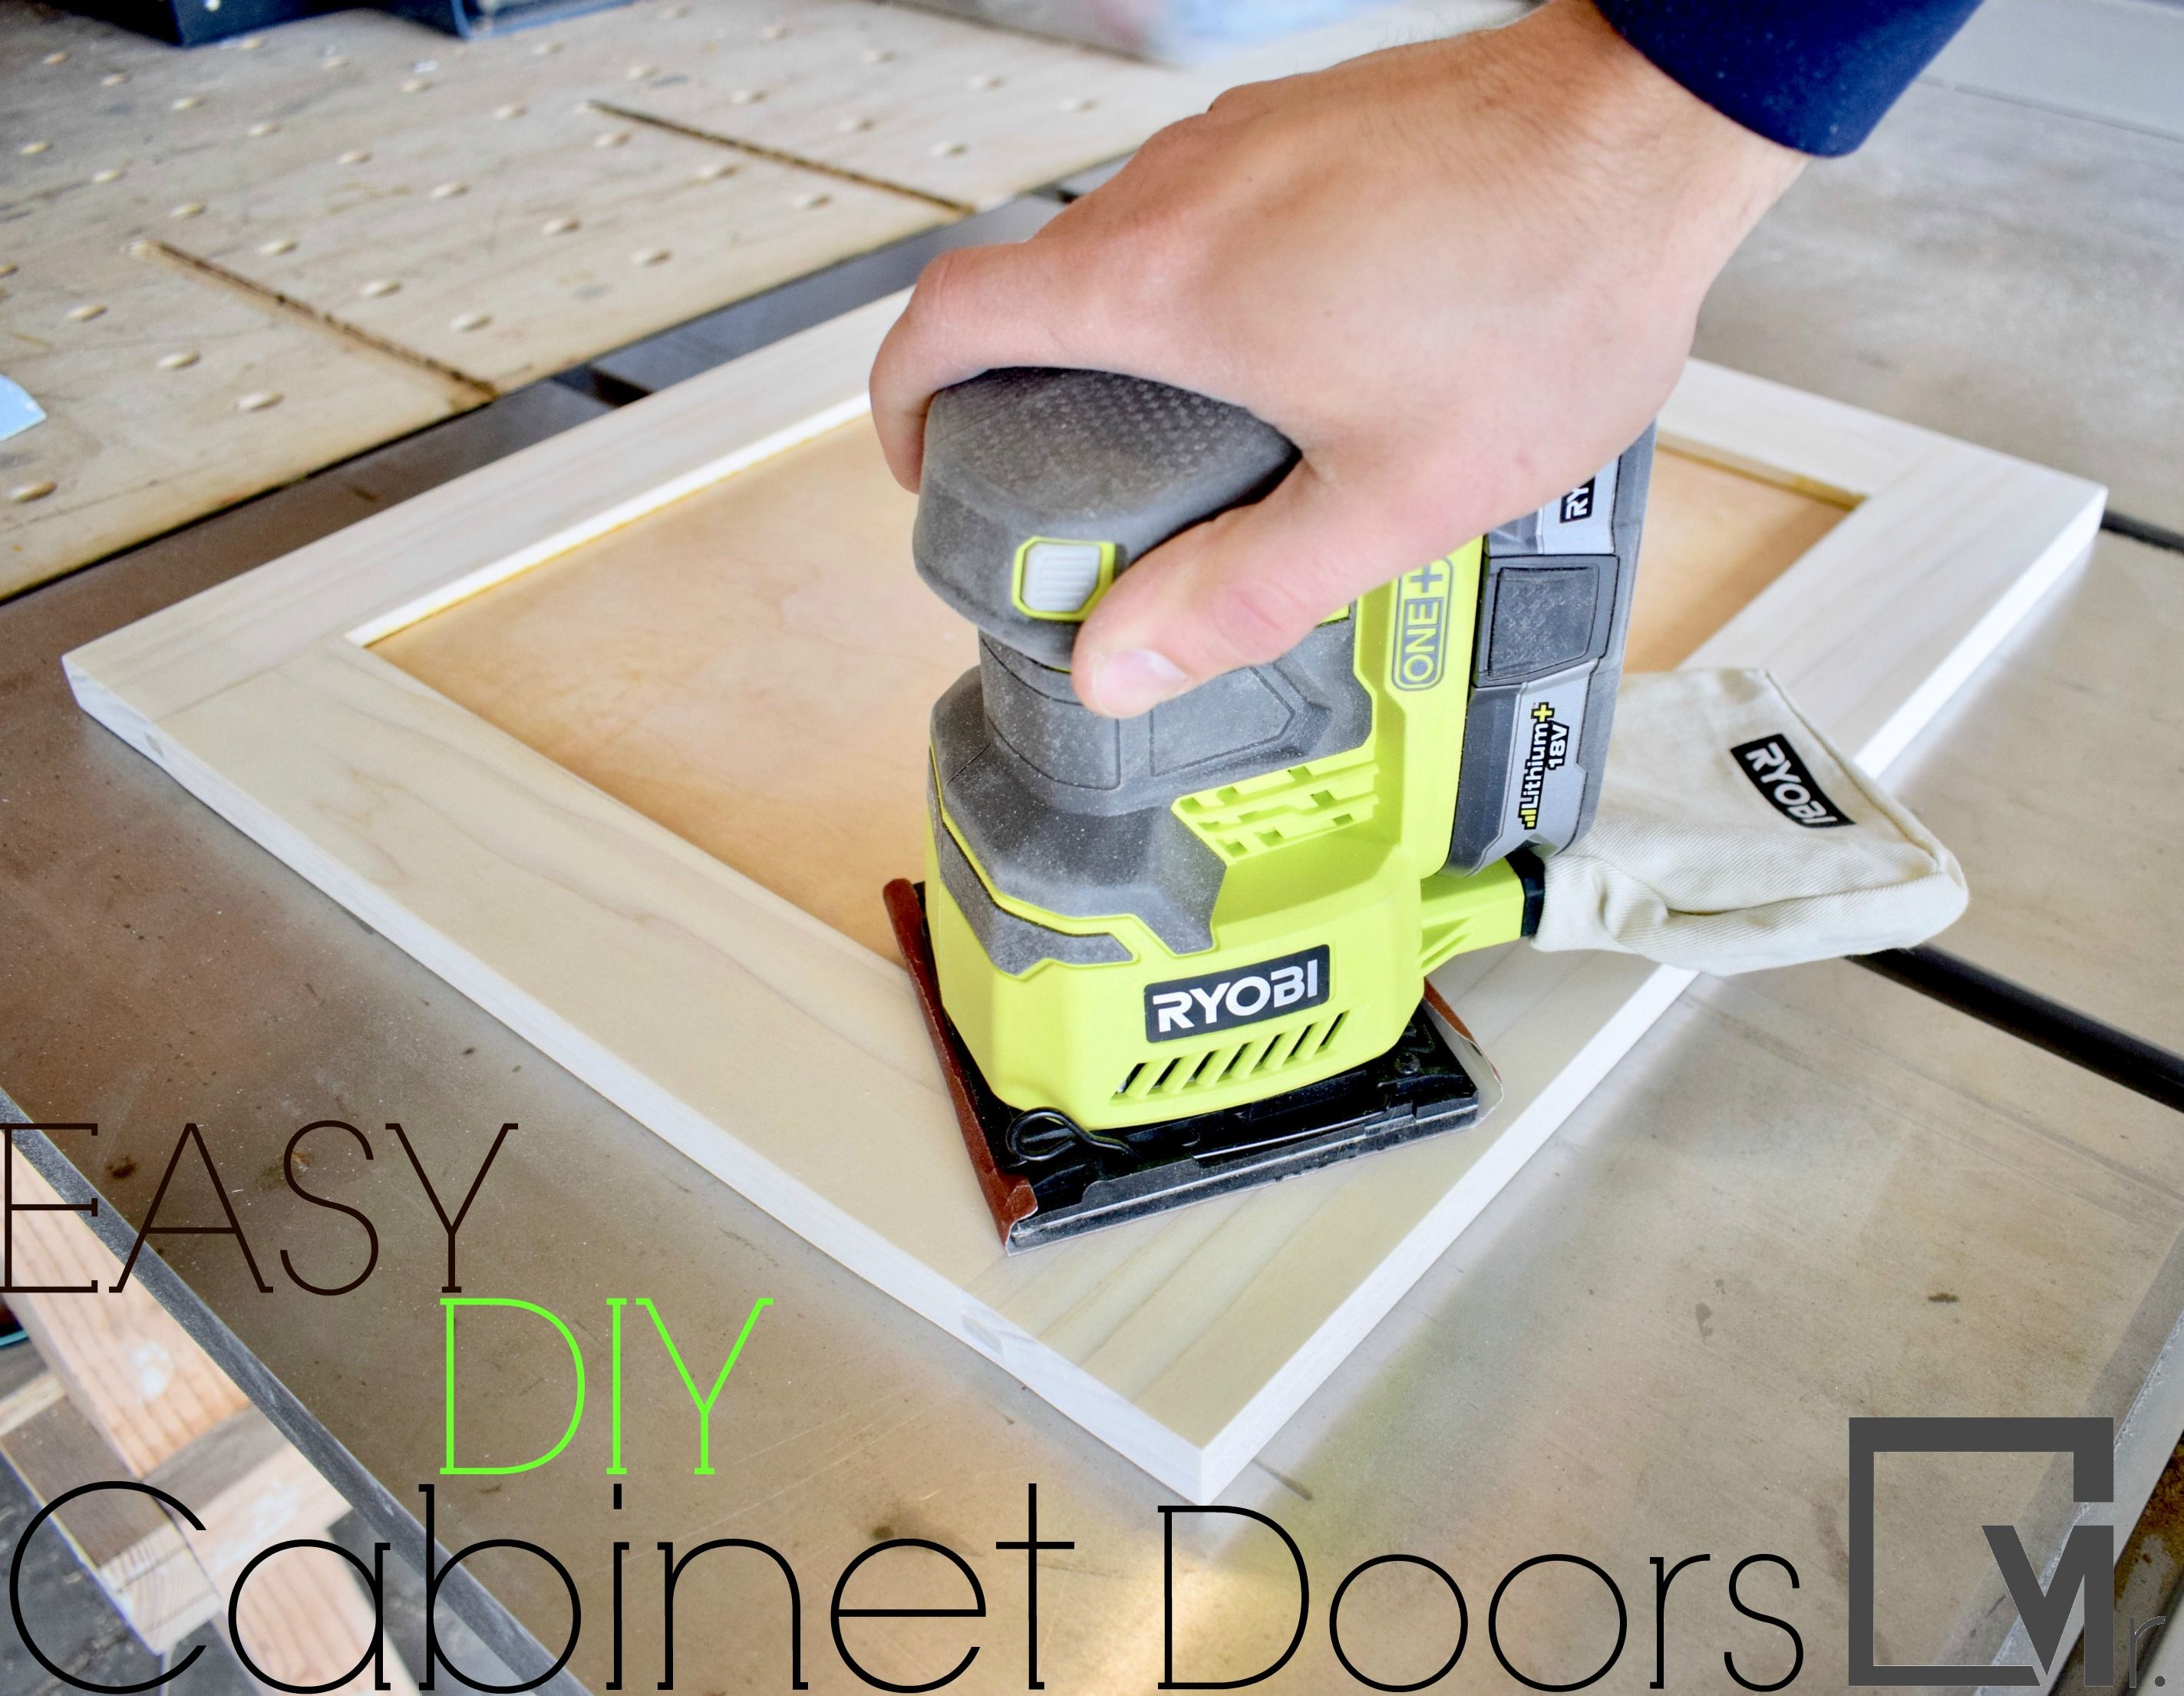 DIY Shaker Cabinet Doors - An Easy Tutorial for Shaker Style Cabinet ...